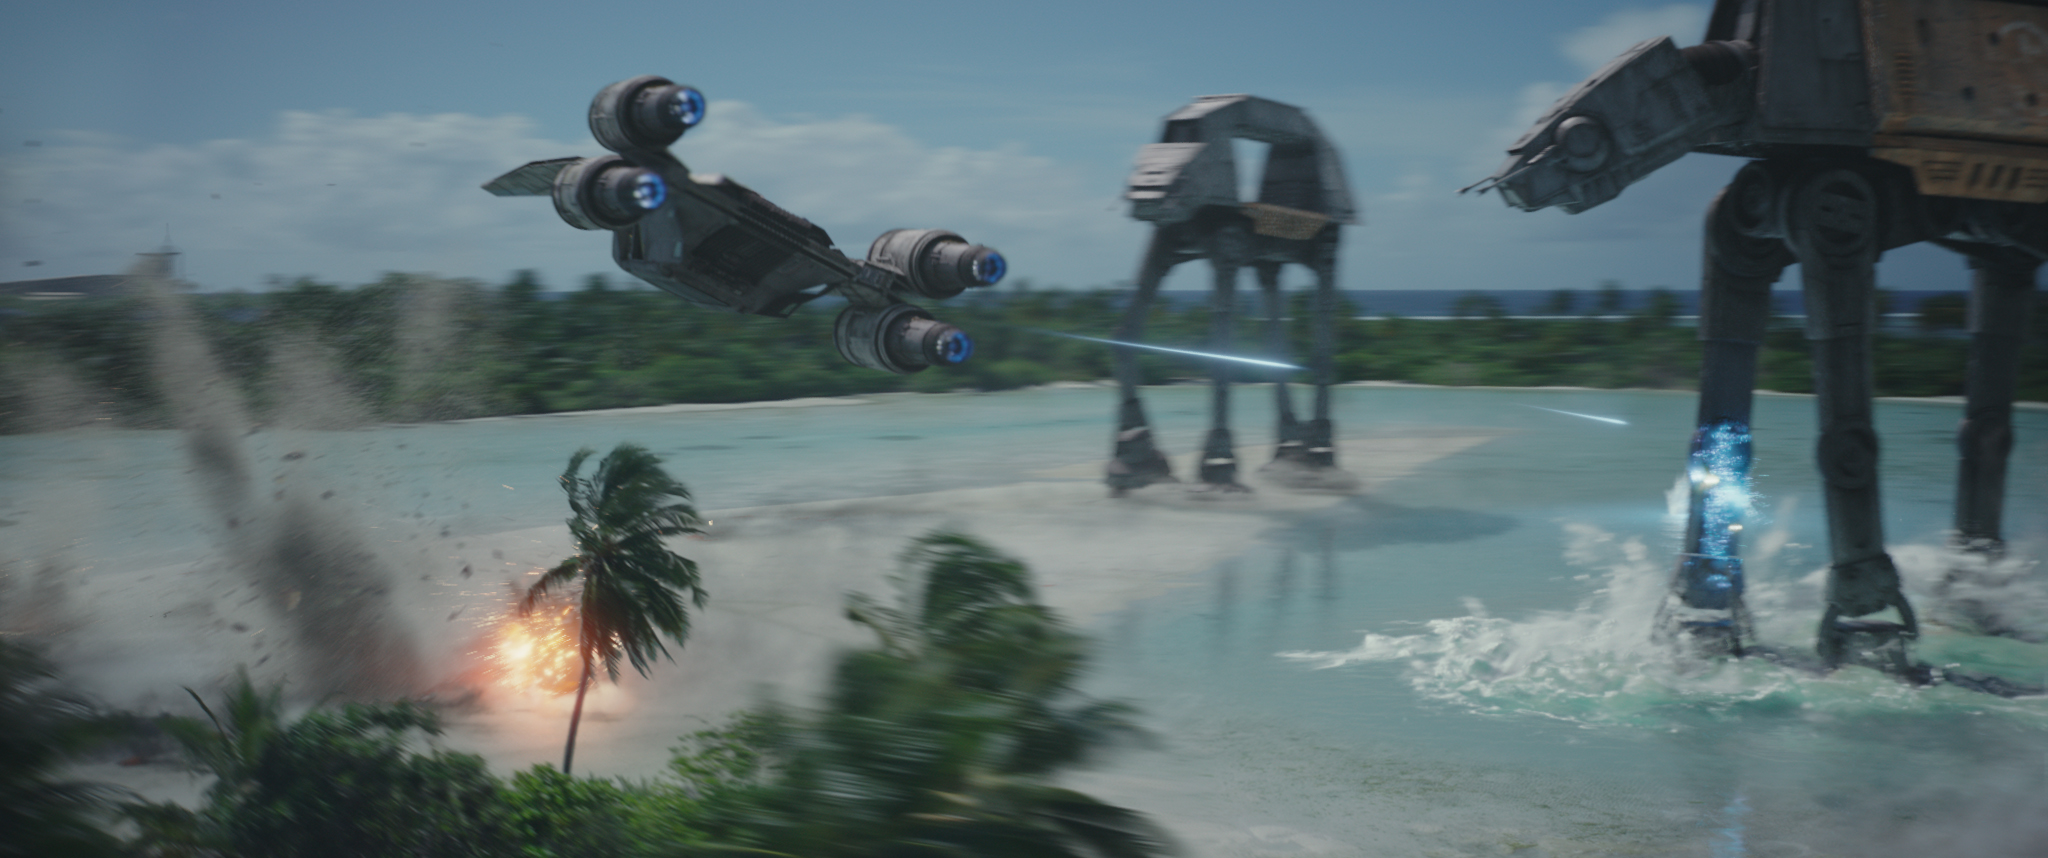 A Rebel U-wing engages two Imperial AT-ACT walkers in this final visual-effects frame.